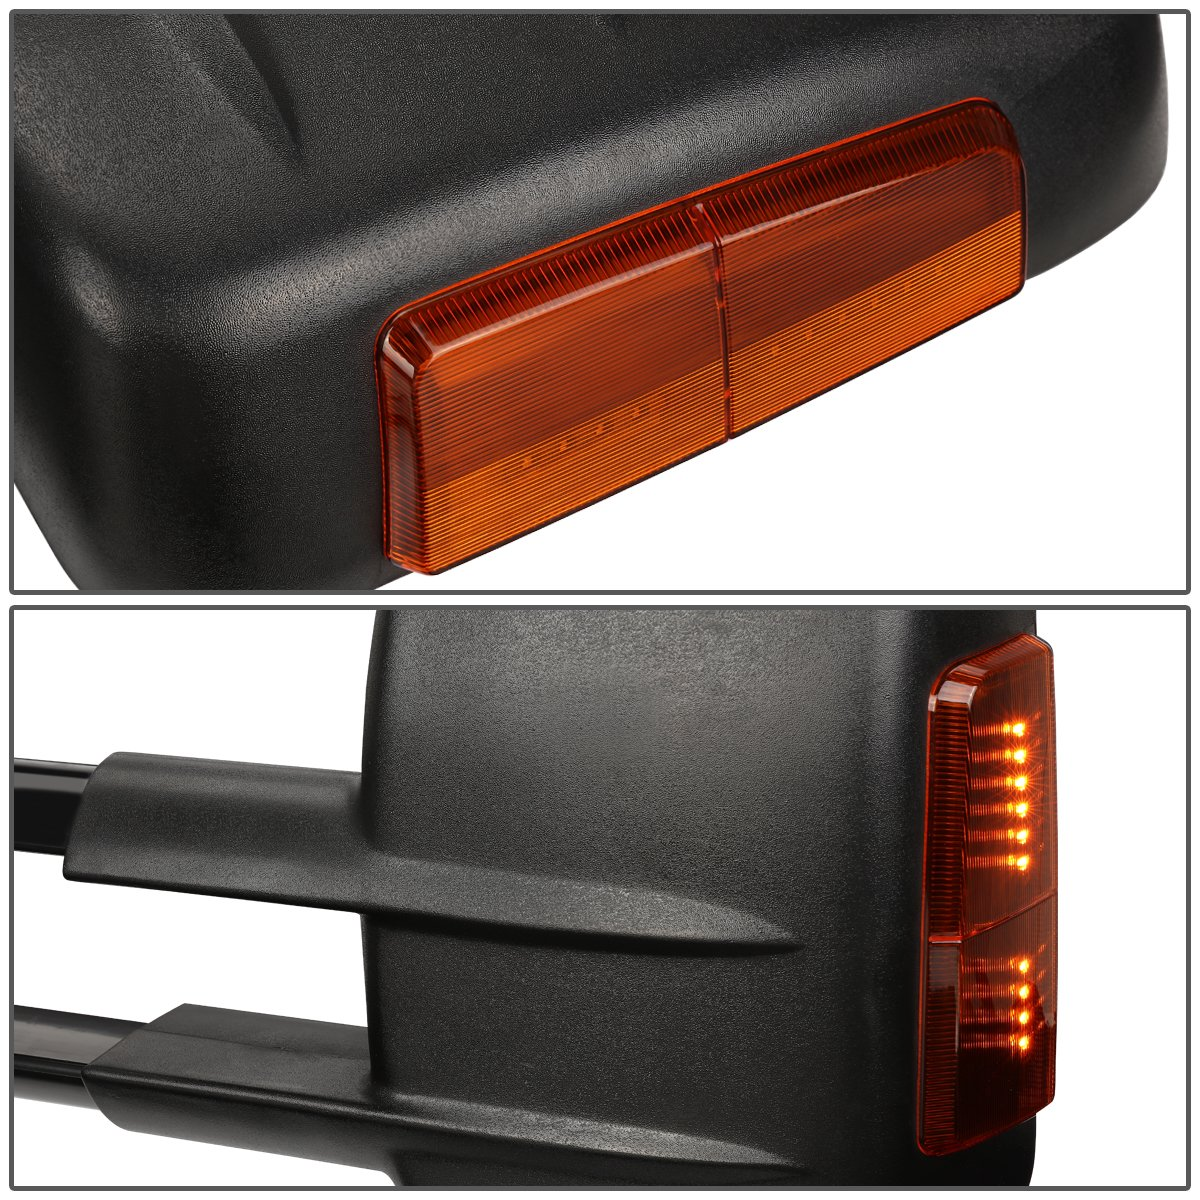 Driver /& Passenger Sides DNA MOTORING TWM-001-T888-BK-AM Pair of Towing Side Mirrors